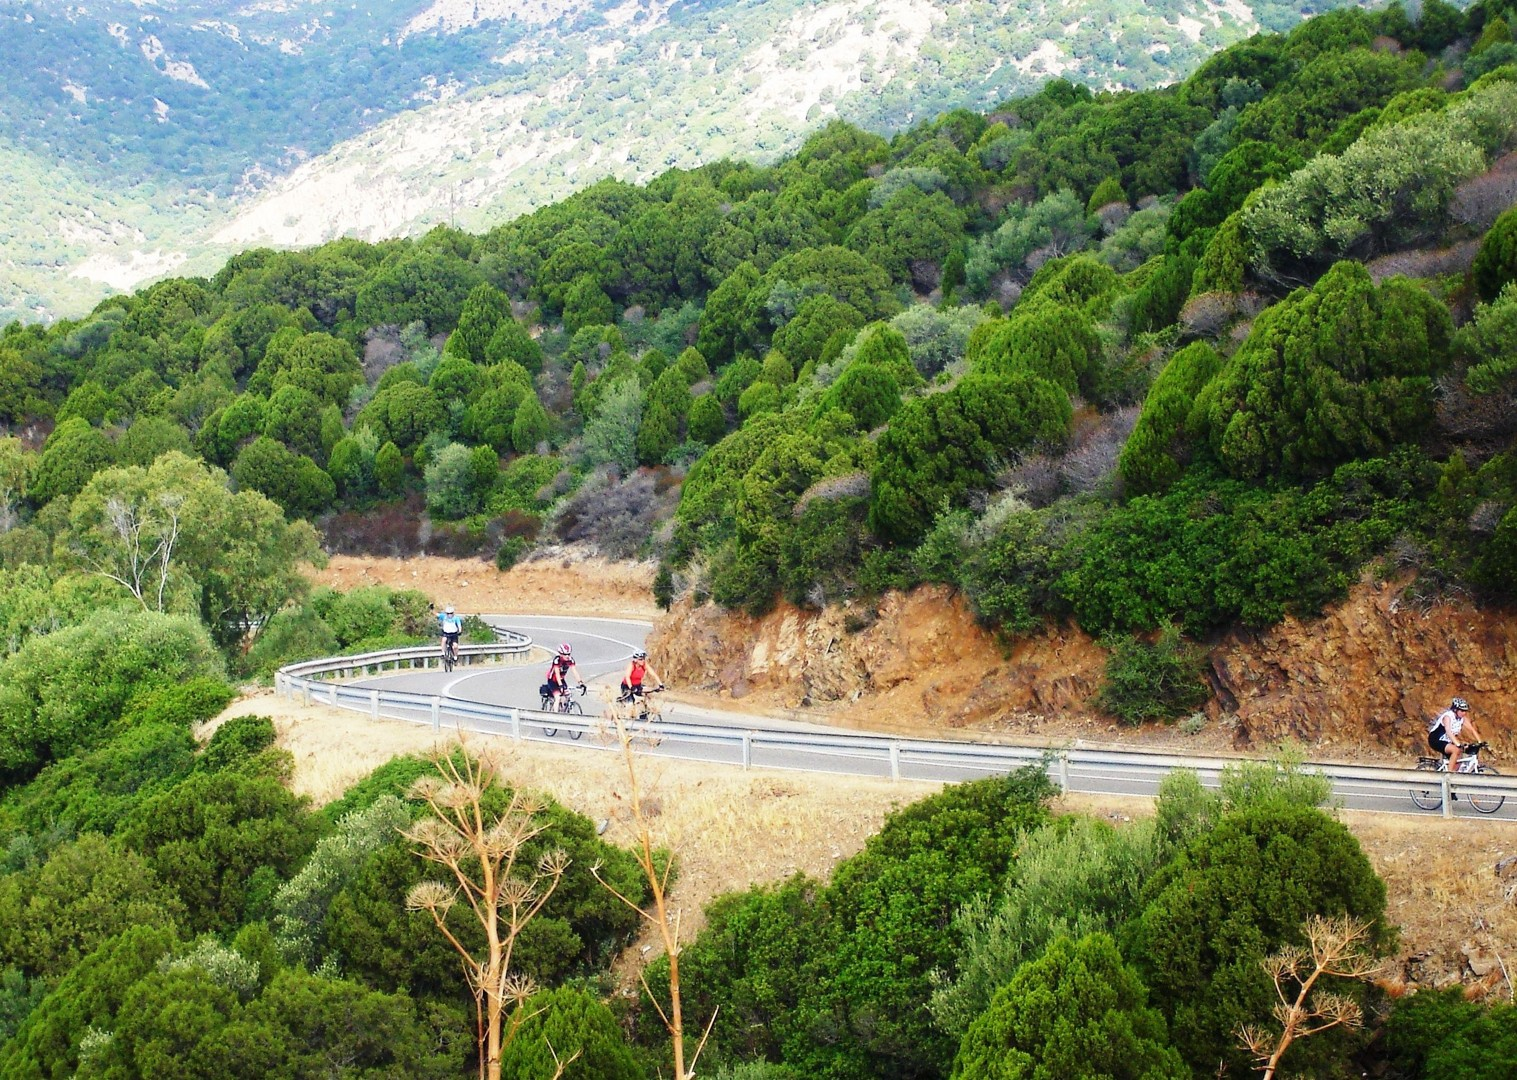 cycling-holiday-self-guided-italy.jpg - Italy - Sardinia - Island Flavours - Self-Guided Leisure Cycling Holiday - Italia Leisure and Family Cycling